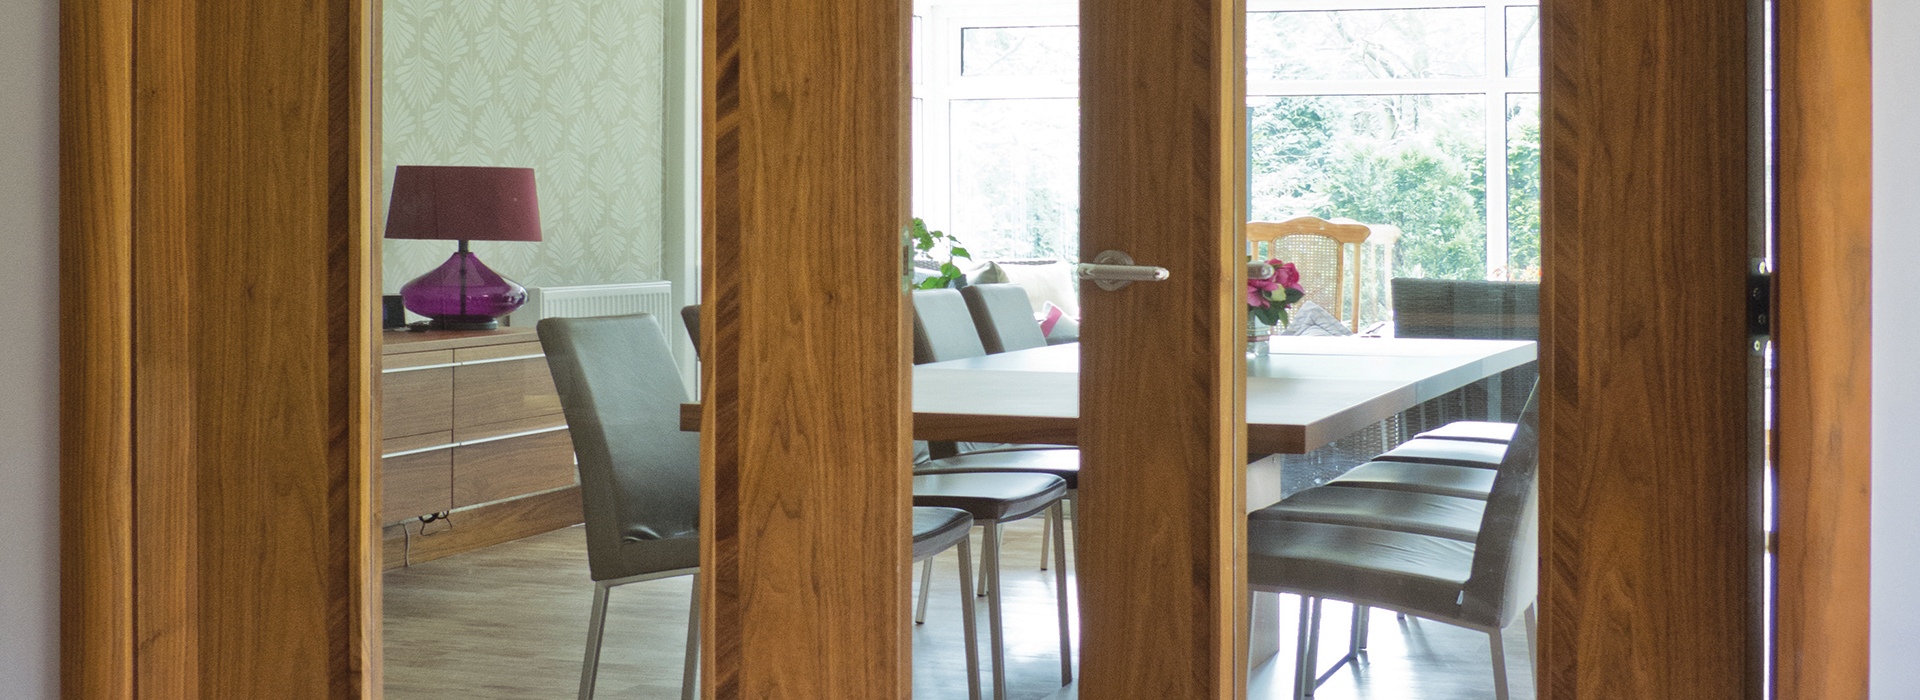 Interior glazed walnut doors